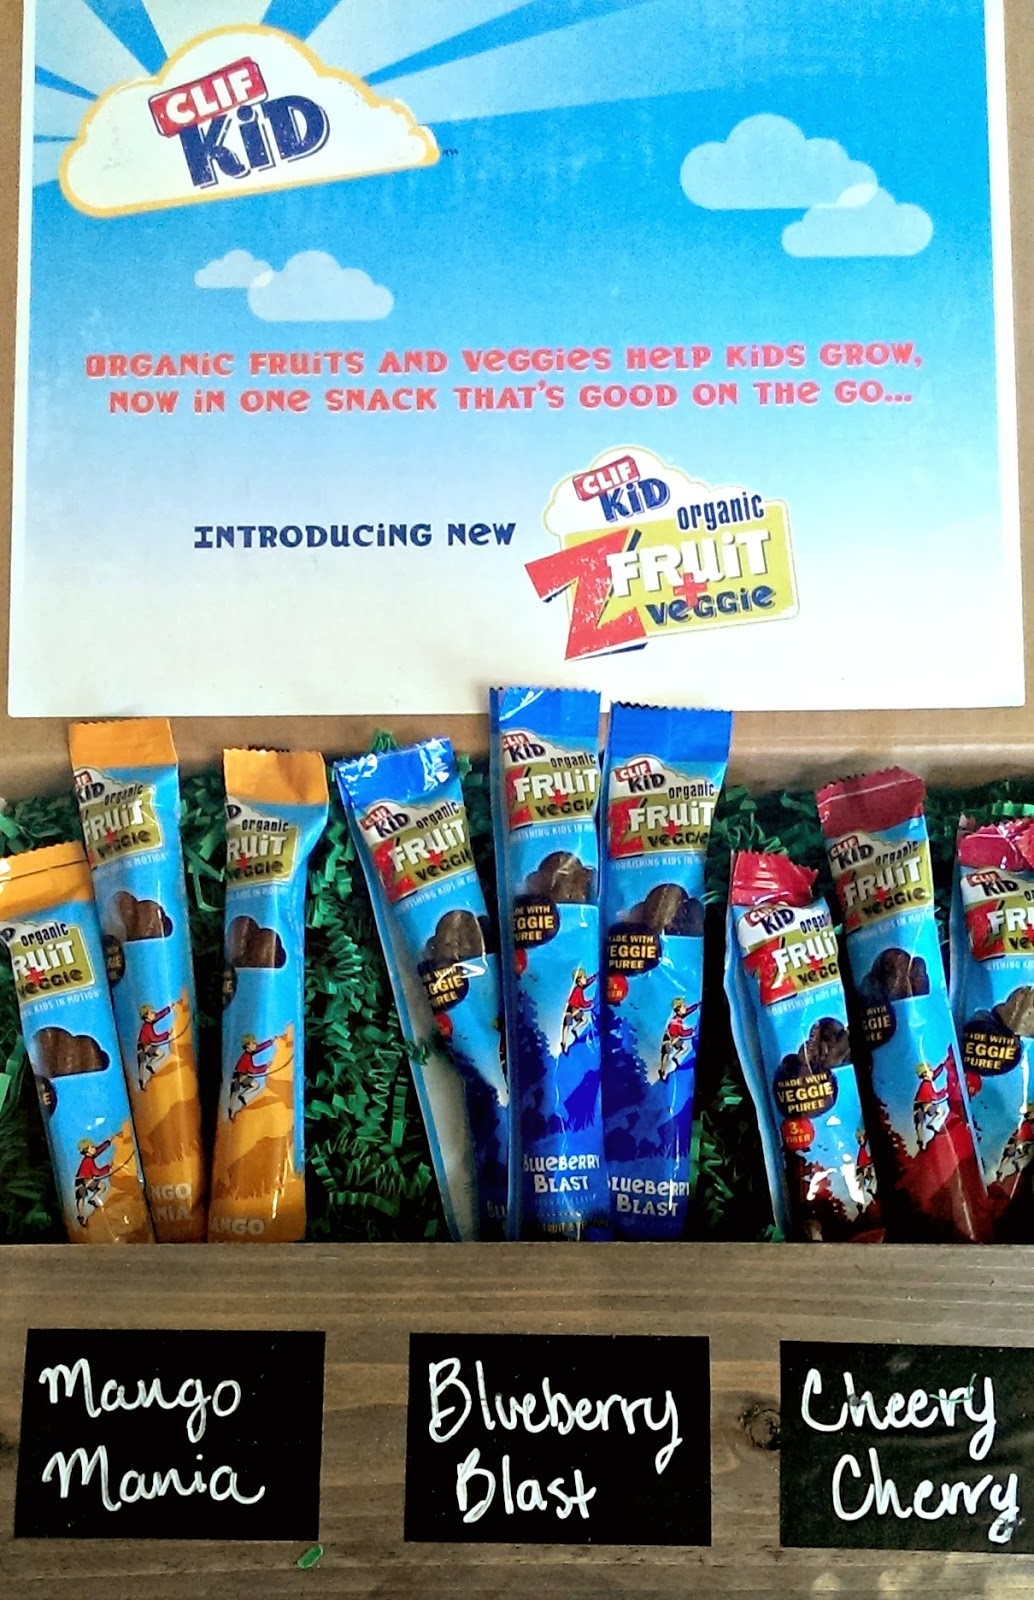 CLIF Kid veggie + fruit snacks